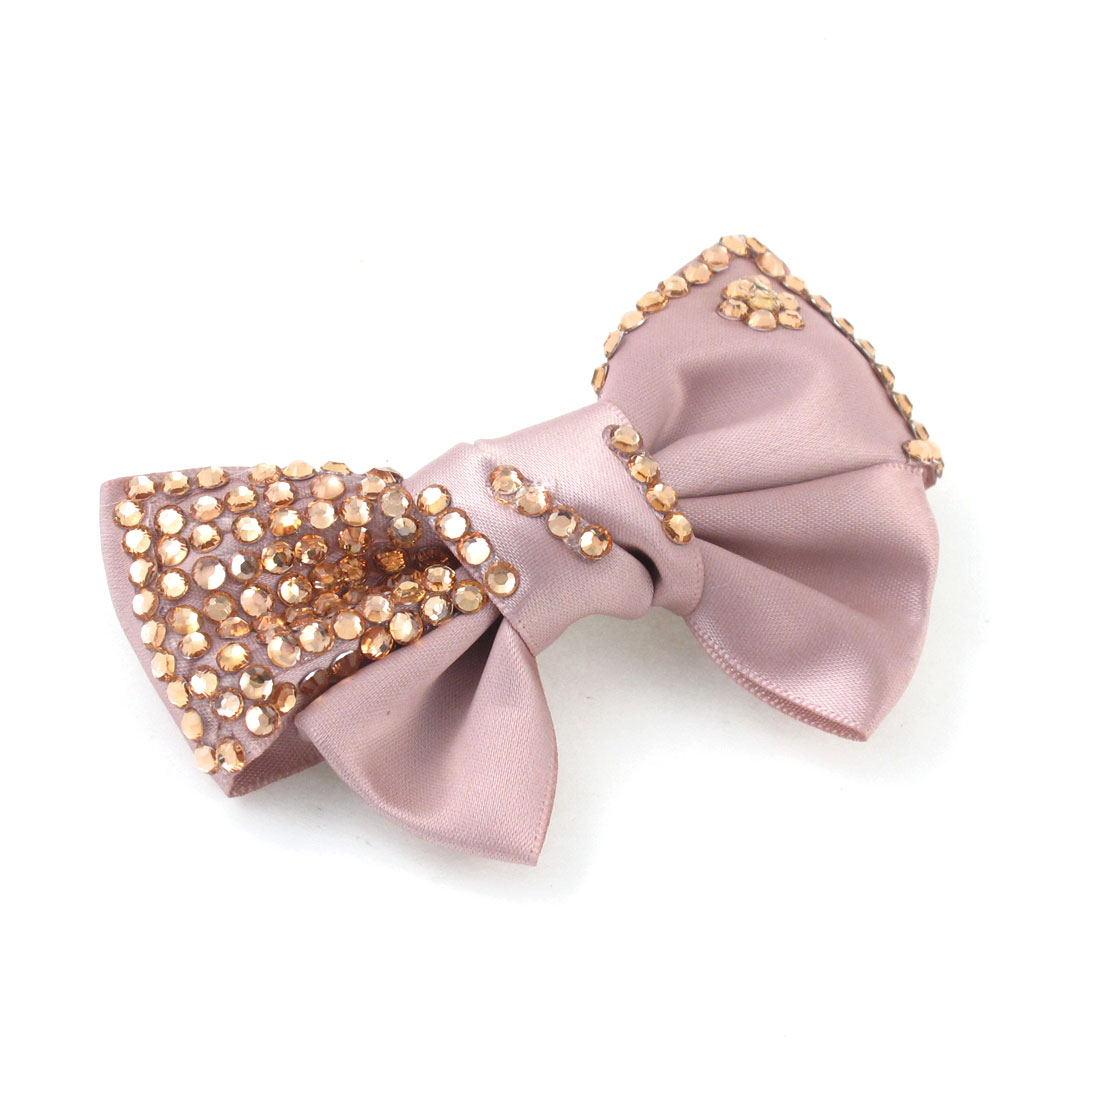 "3.9"" Length Rosybrown Polyester Bowknot Accent Hair Clip Alligator for Women"